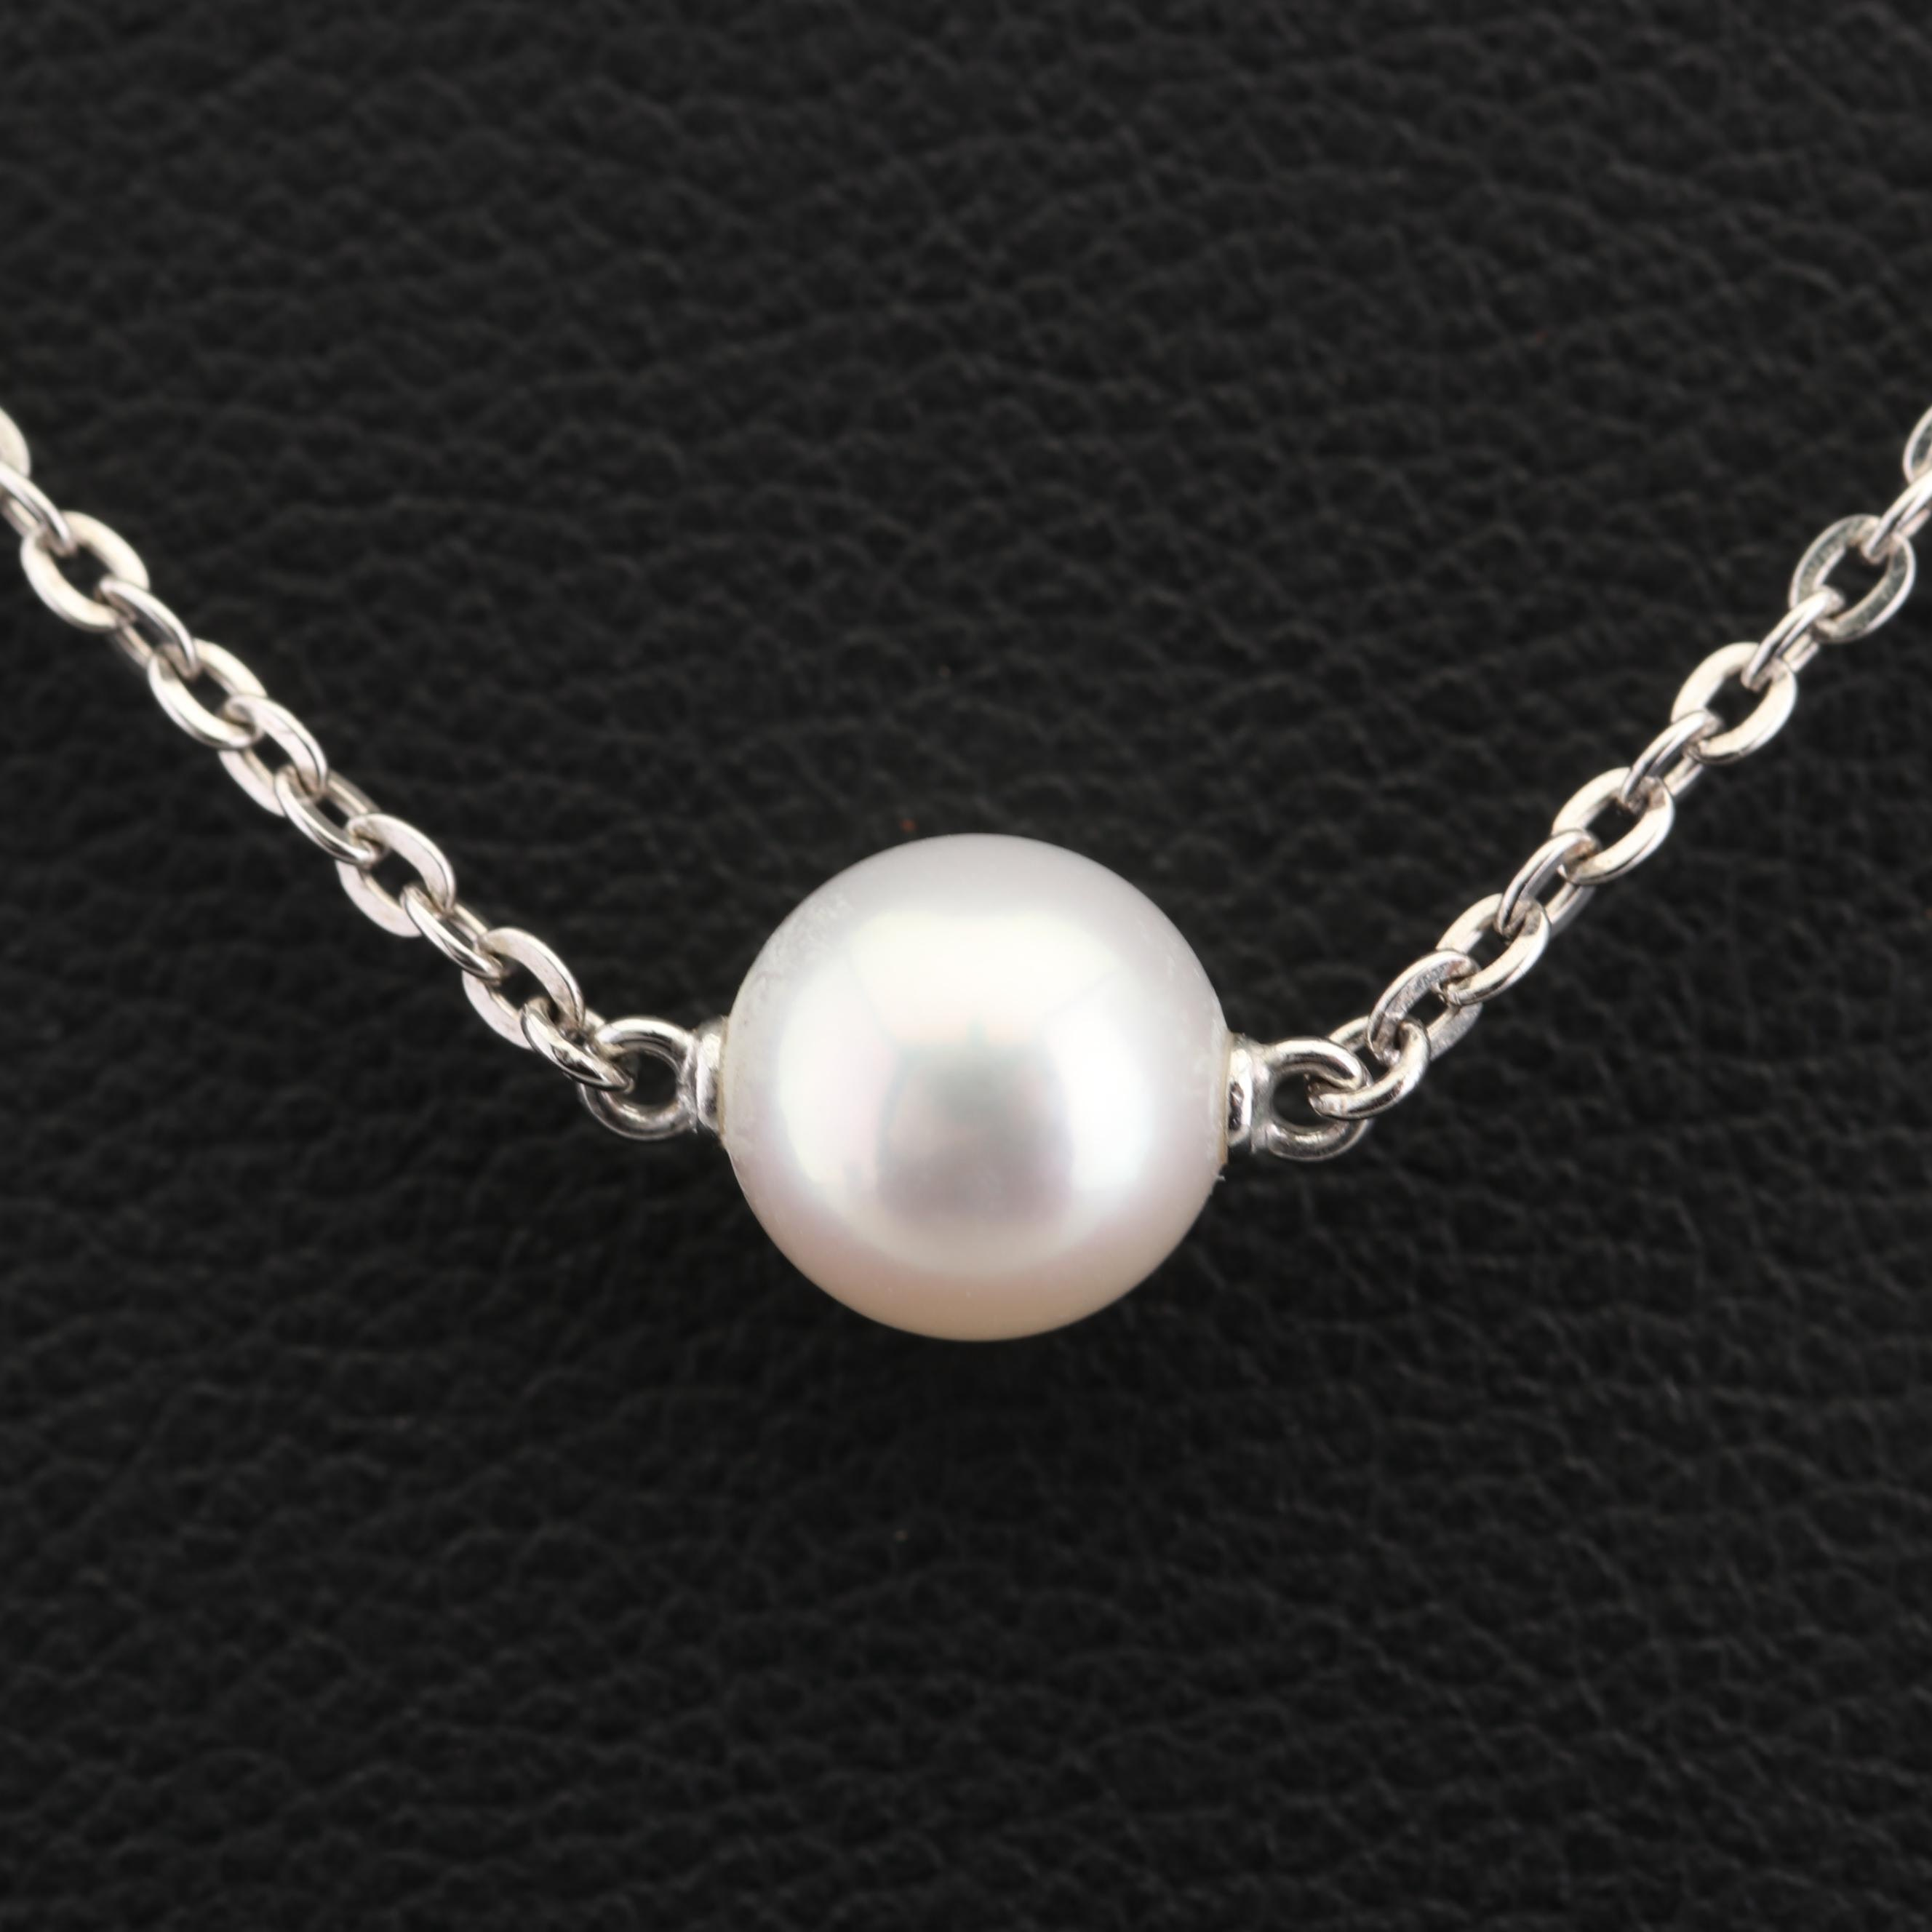 Mikimoto Sterling Silver Cultured Pearl Solitaire Pendant Necklace